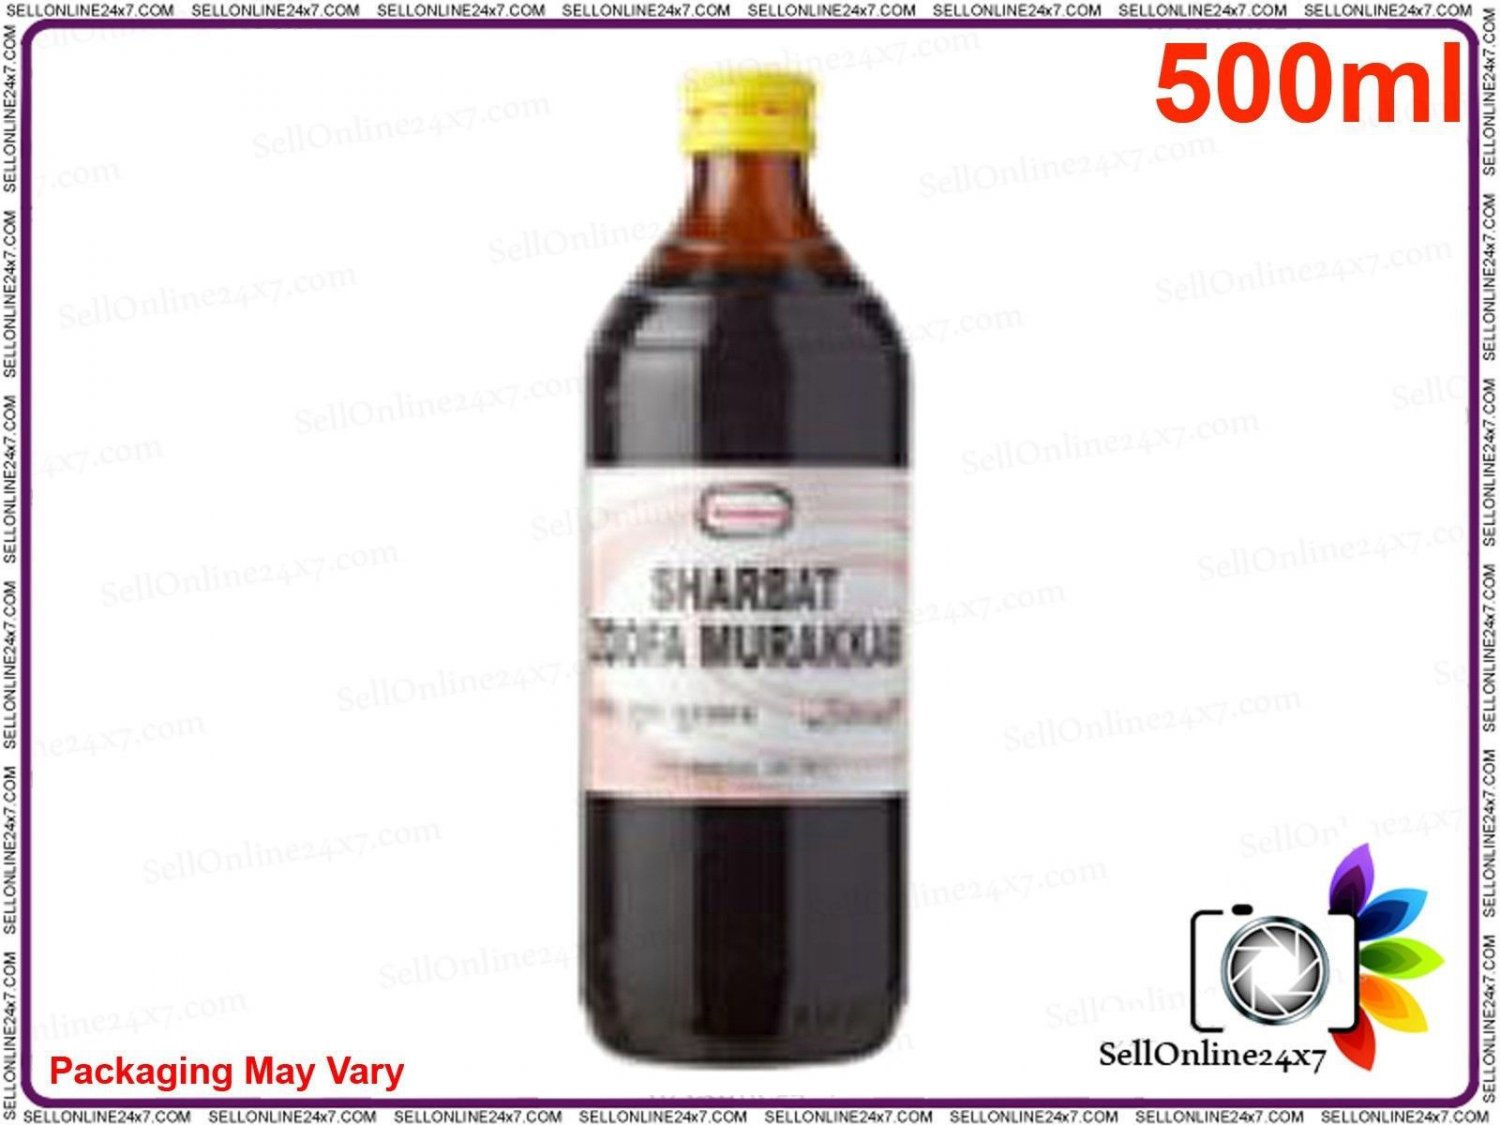 Hamdard Sharbat Zoofa Murakkab Natural Remedy-500ml